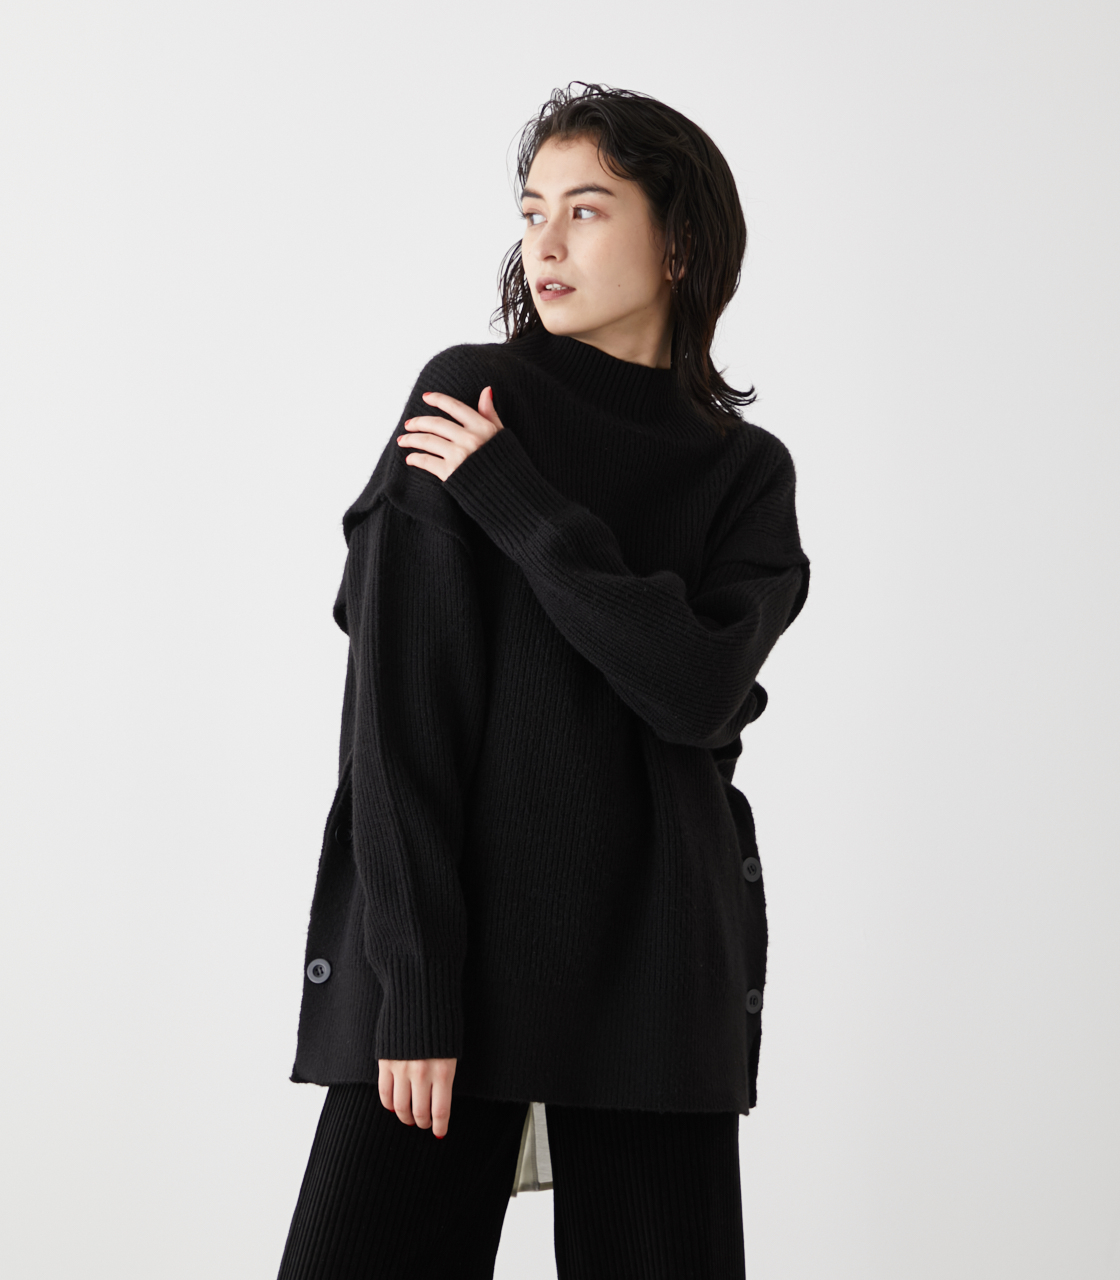 2WAY SLEEVE REMOVABLE TOPS/2WAYスリーブリムーバブルトップス 詳細画像 BLK 1